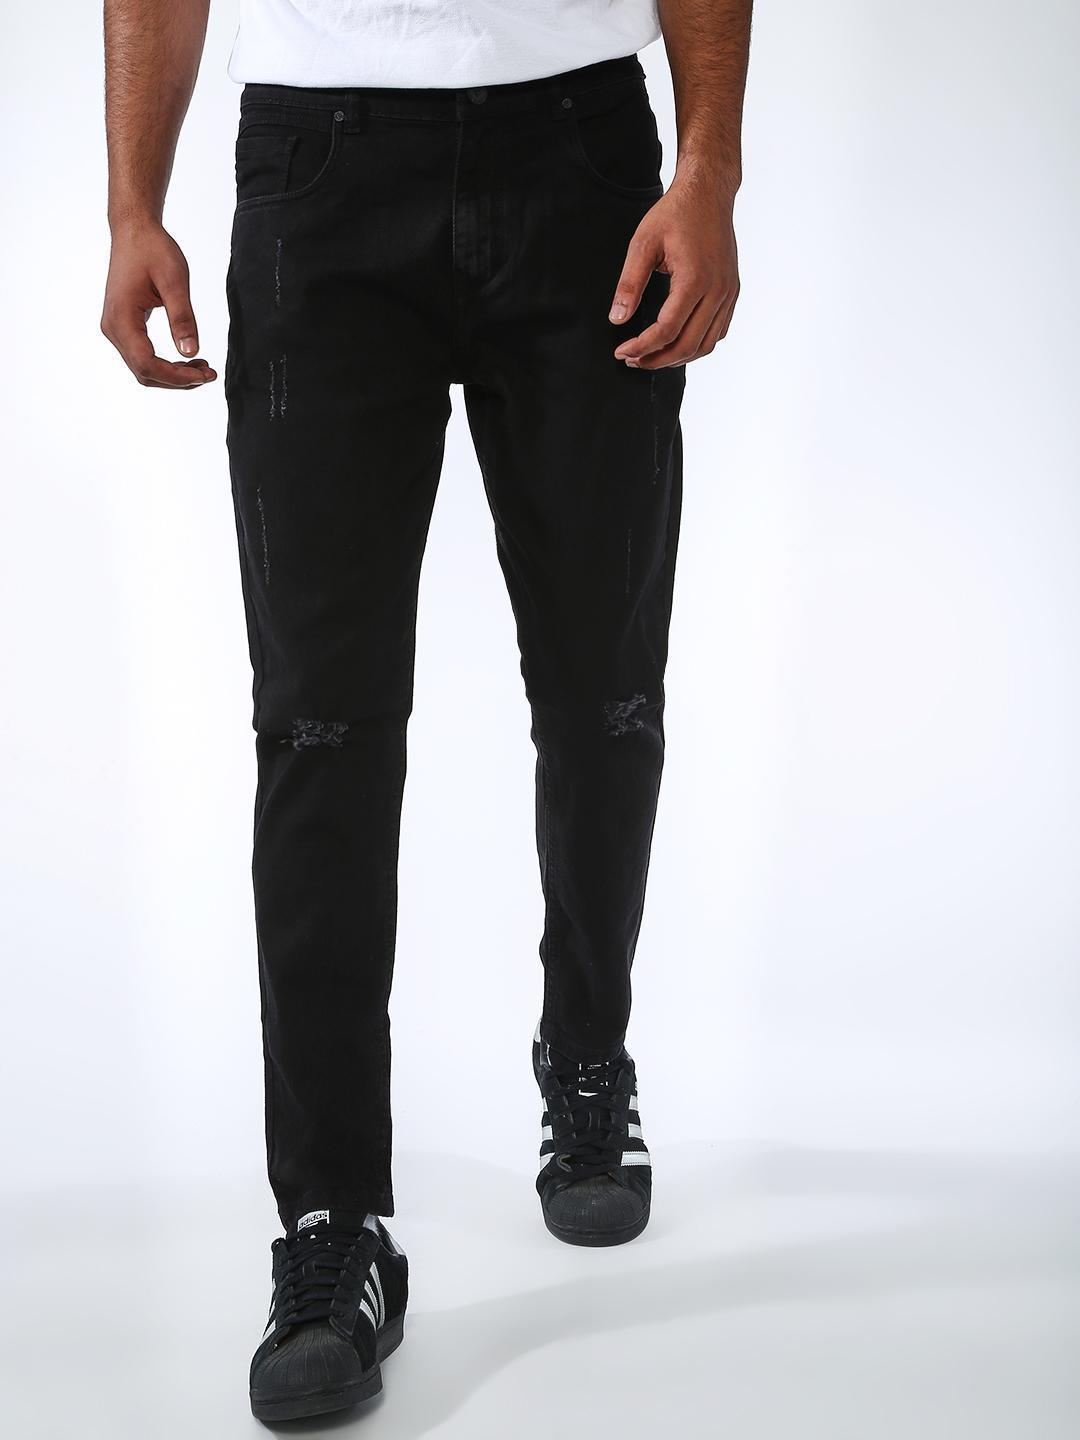 REALM Black Distressed Skinny Fit Jeans 1